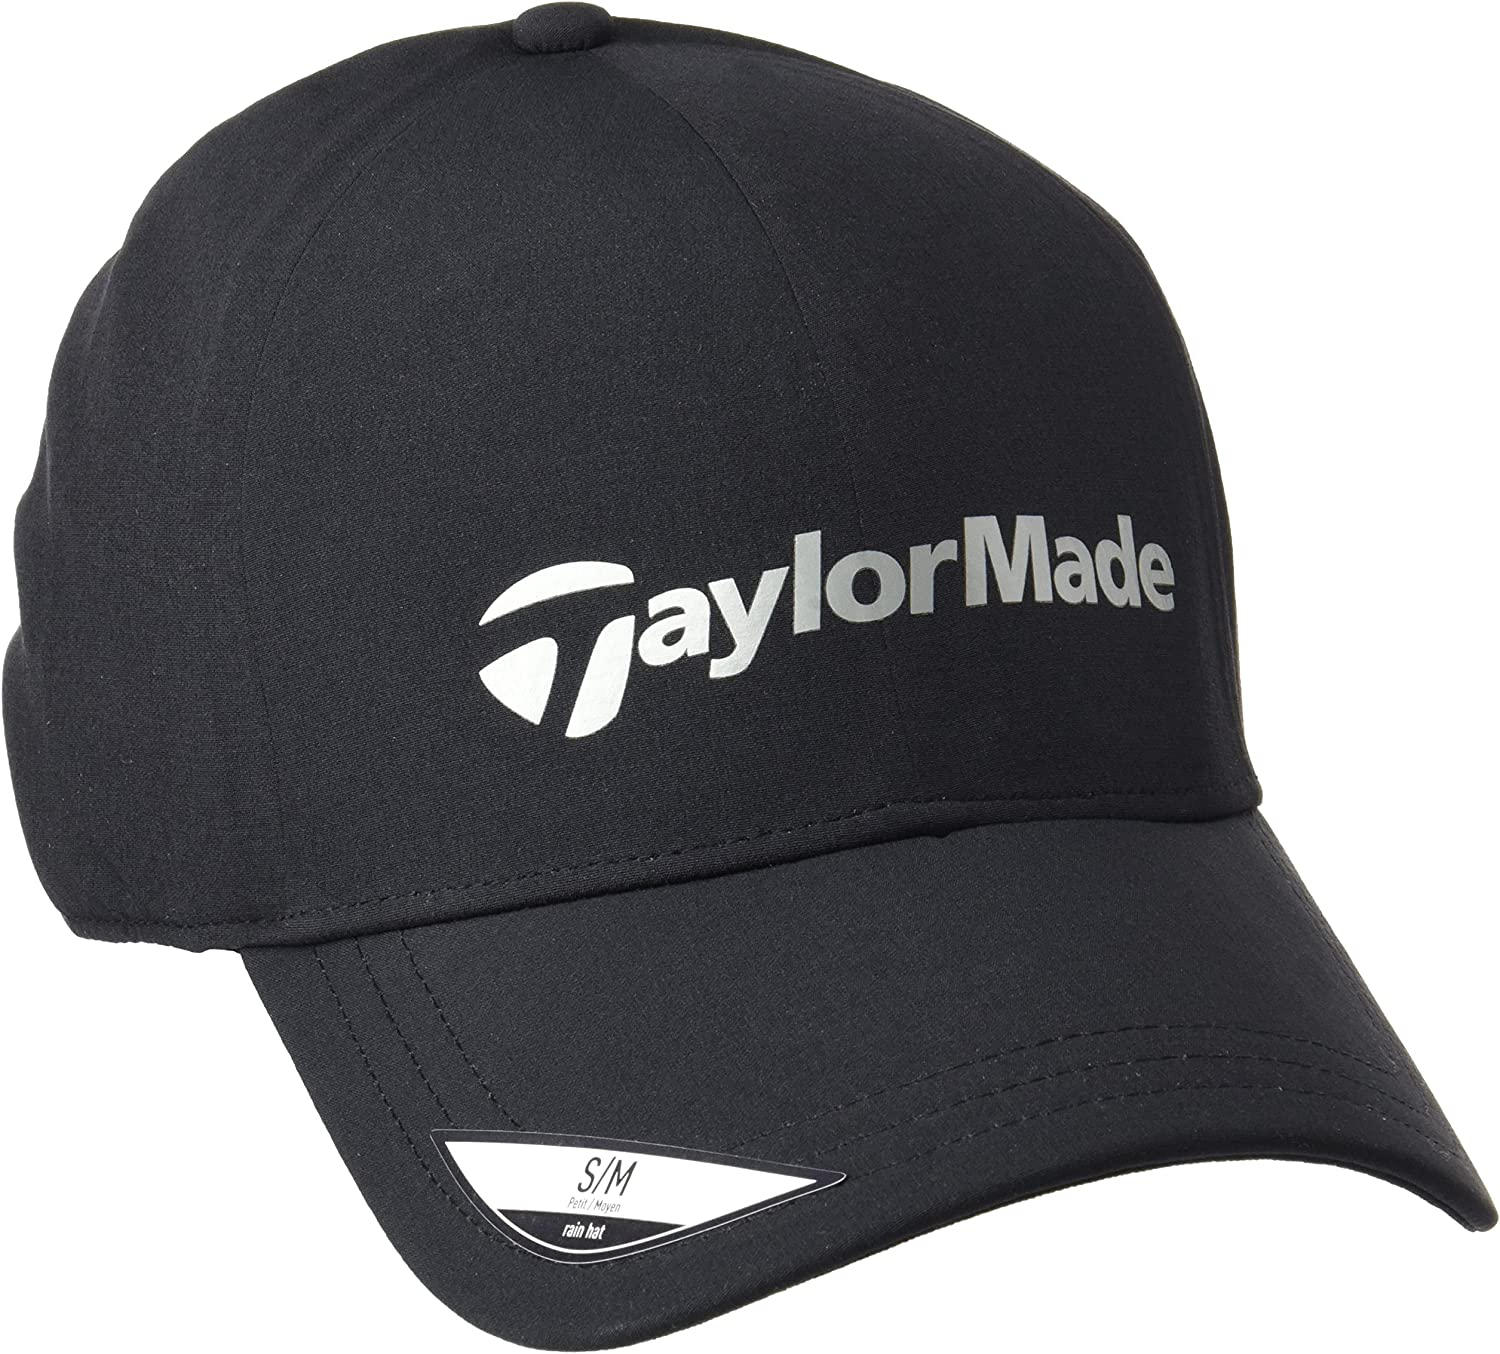 TaylorMade SEAL limited product Golf Storm Cap Sale special price